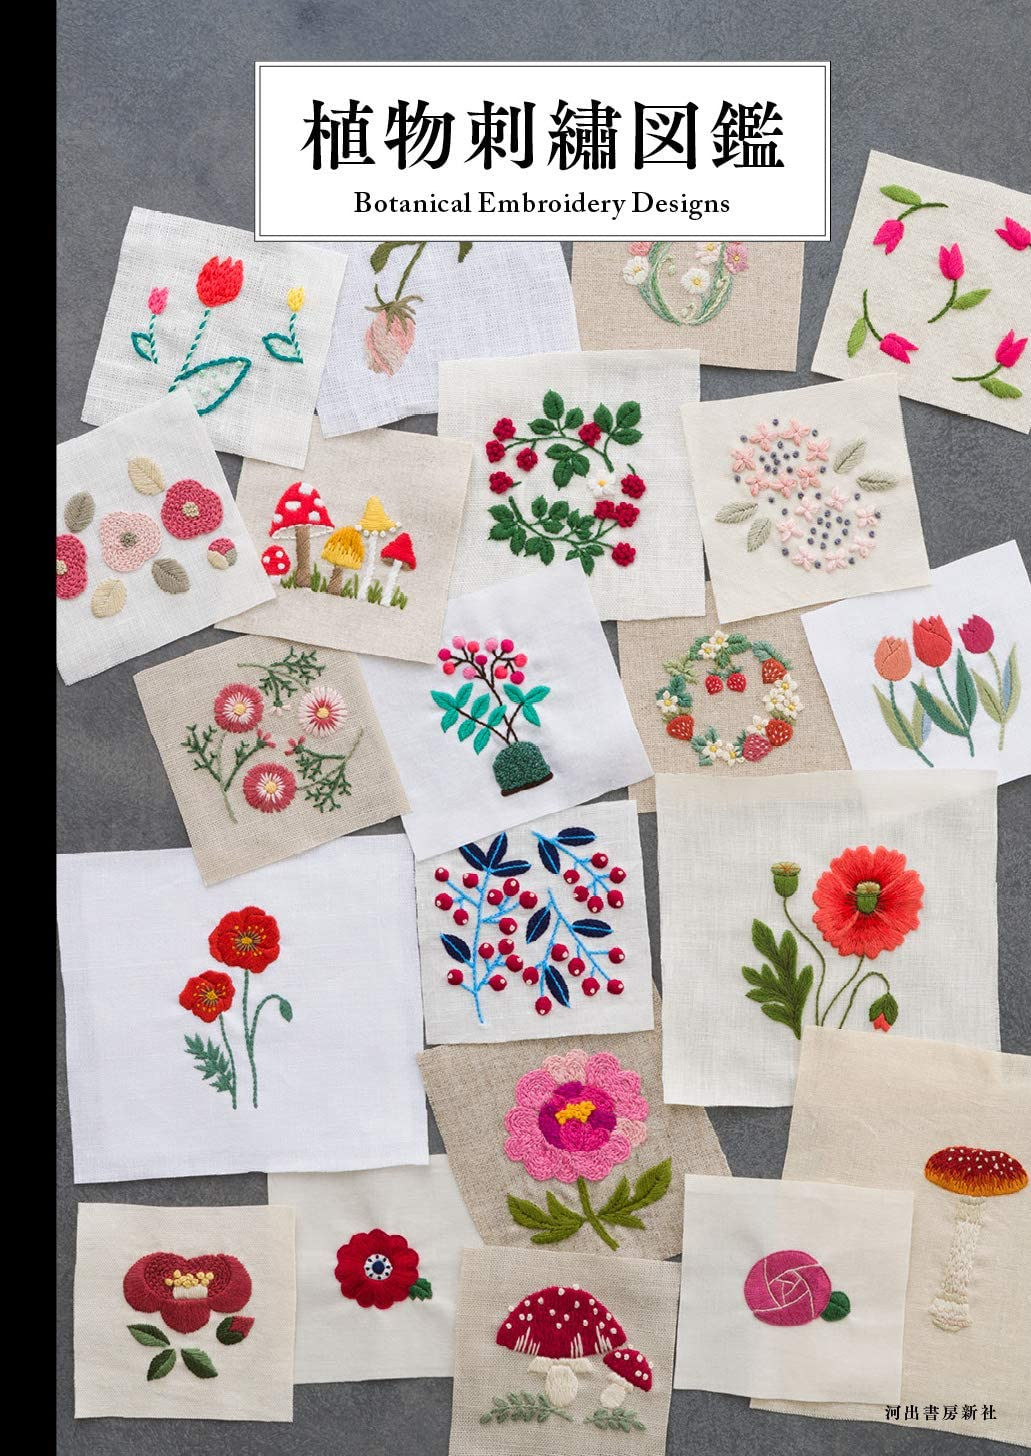 Plant embroidery picture book